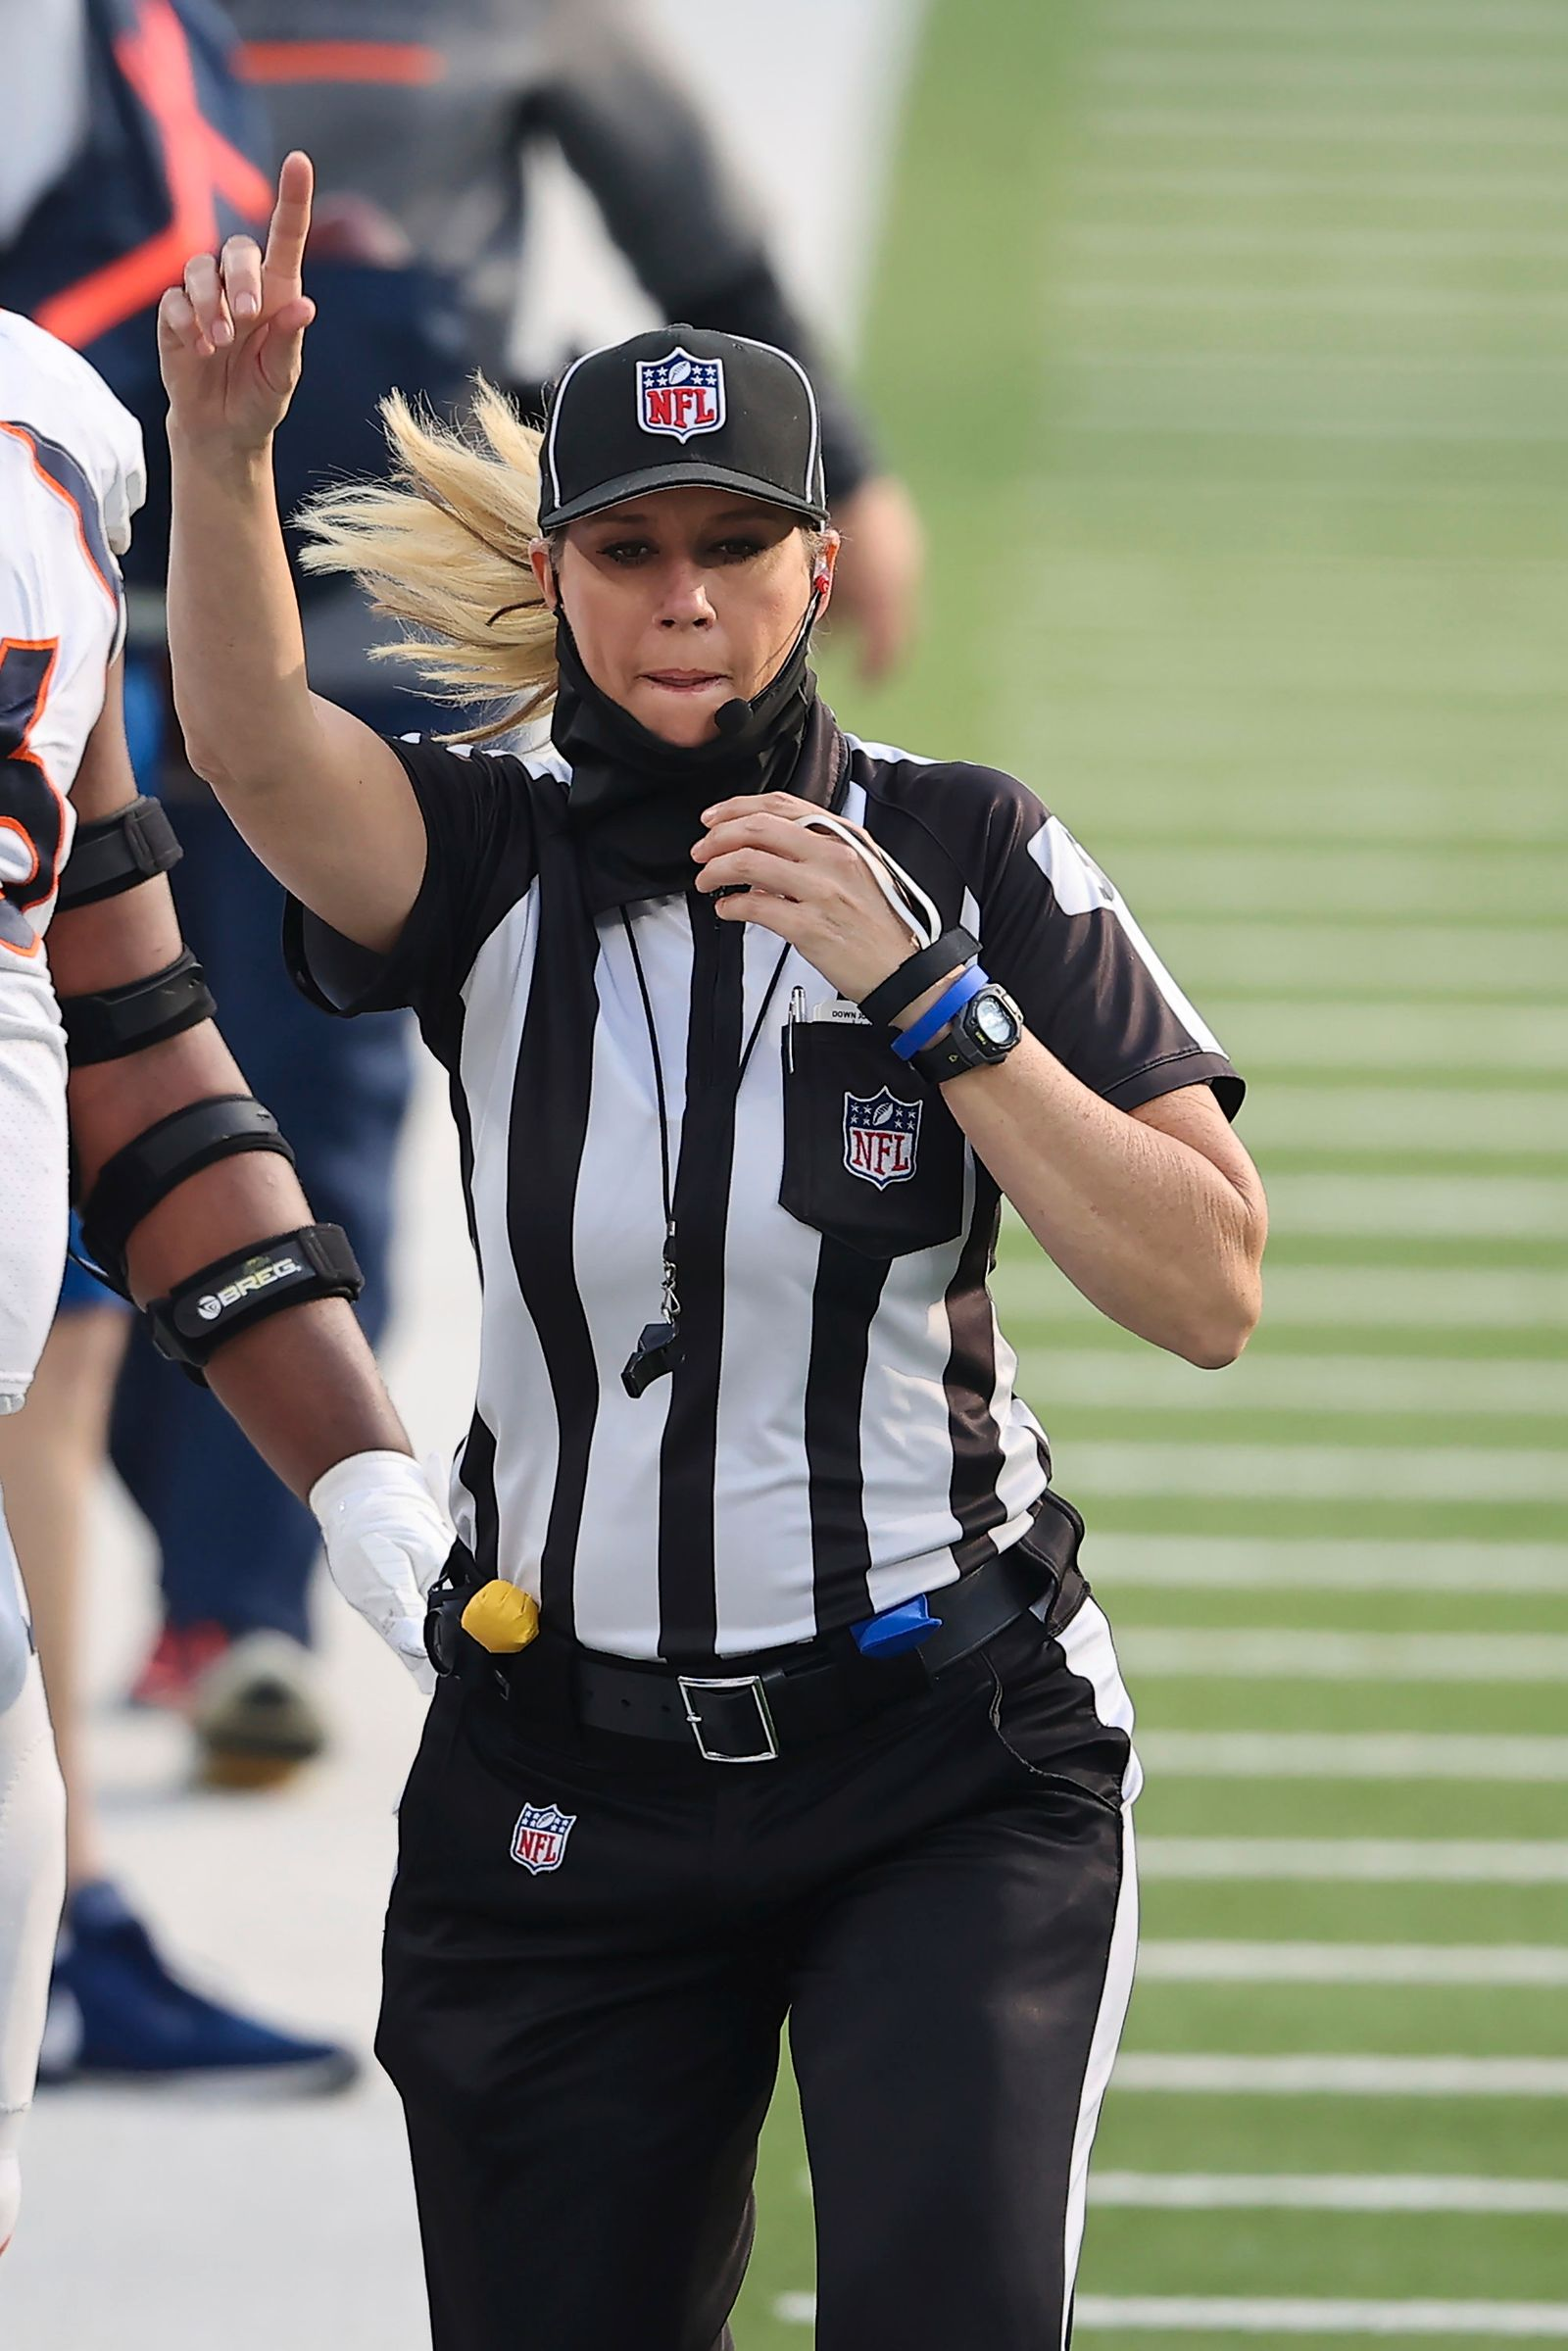 Super Bowl Officials Football